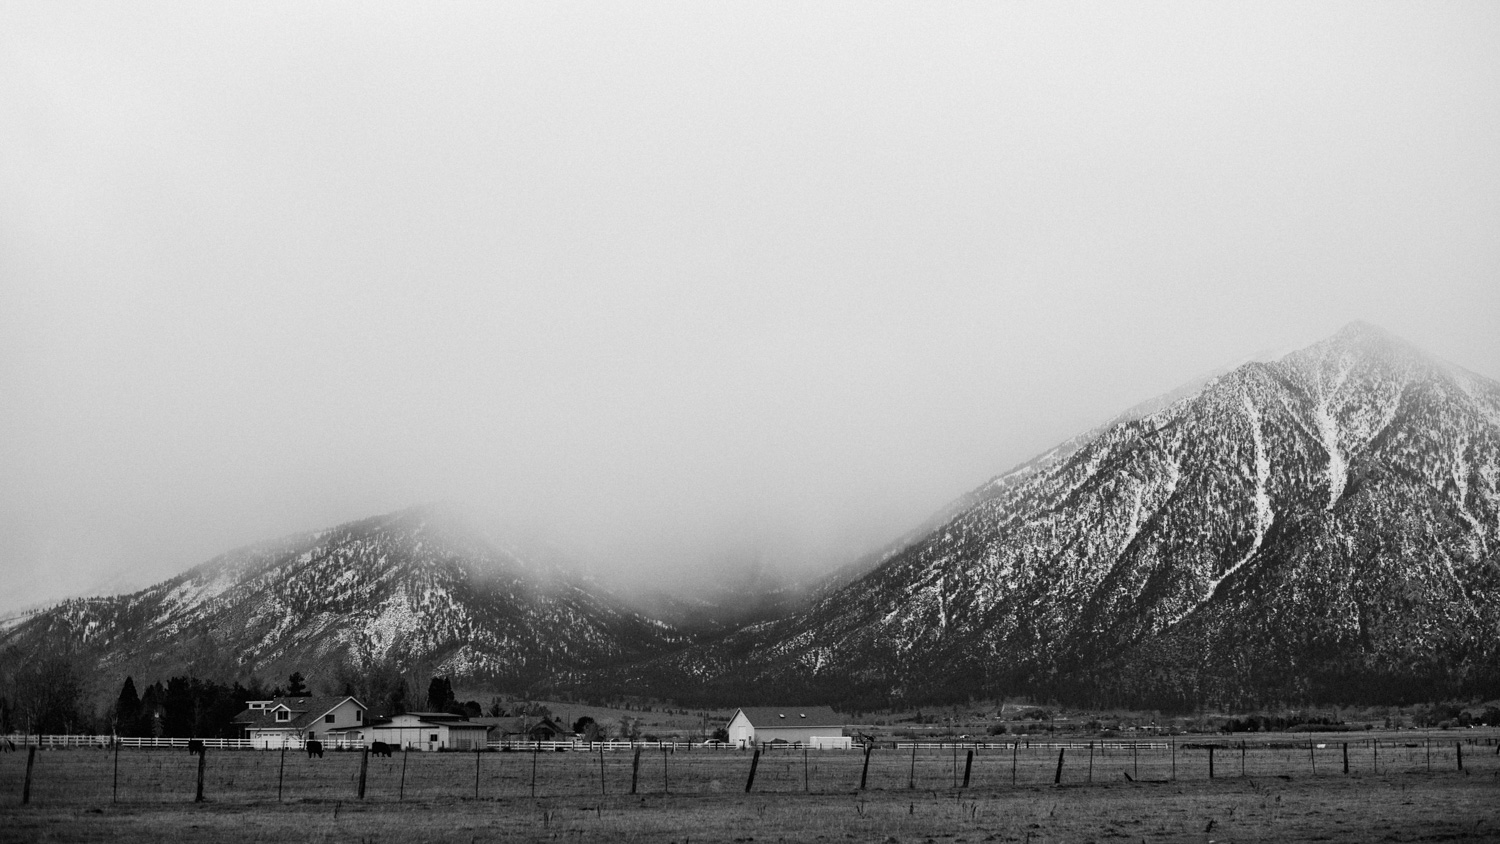 farm and snowy mountains in black and white